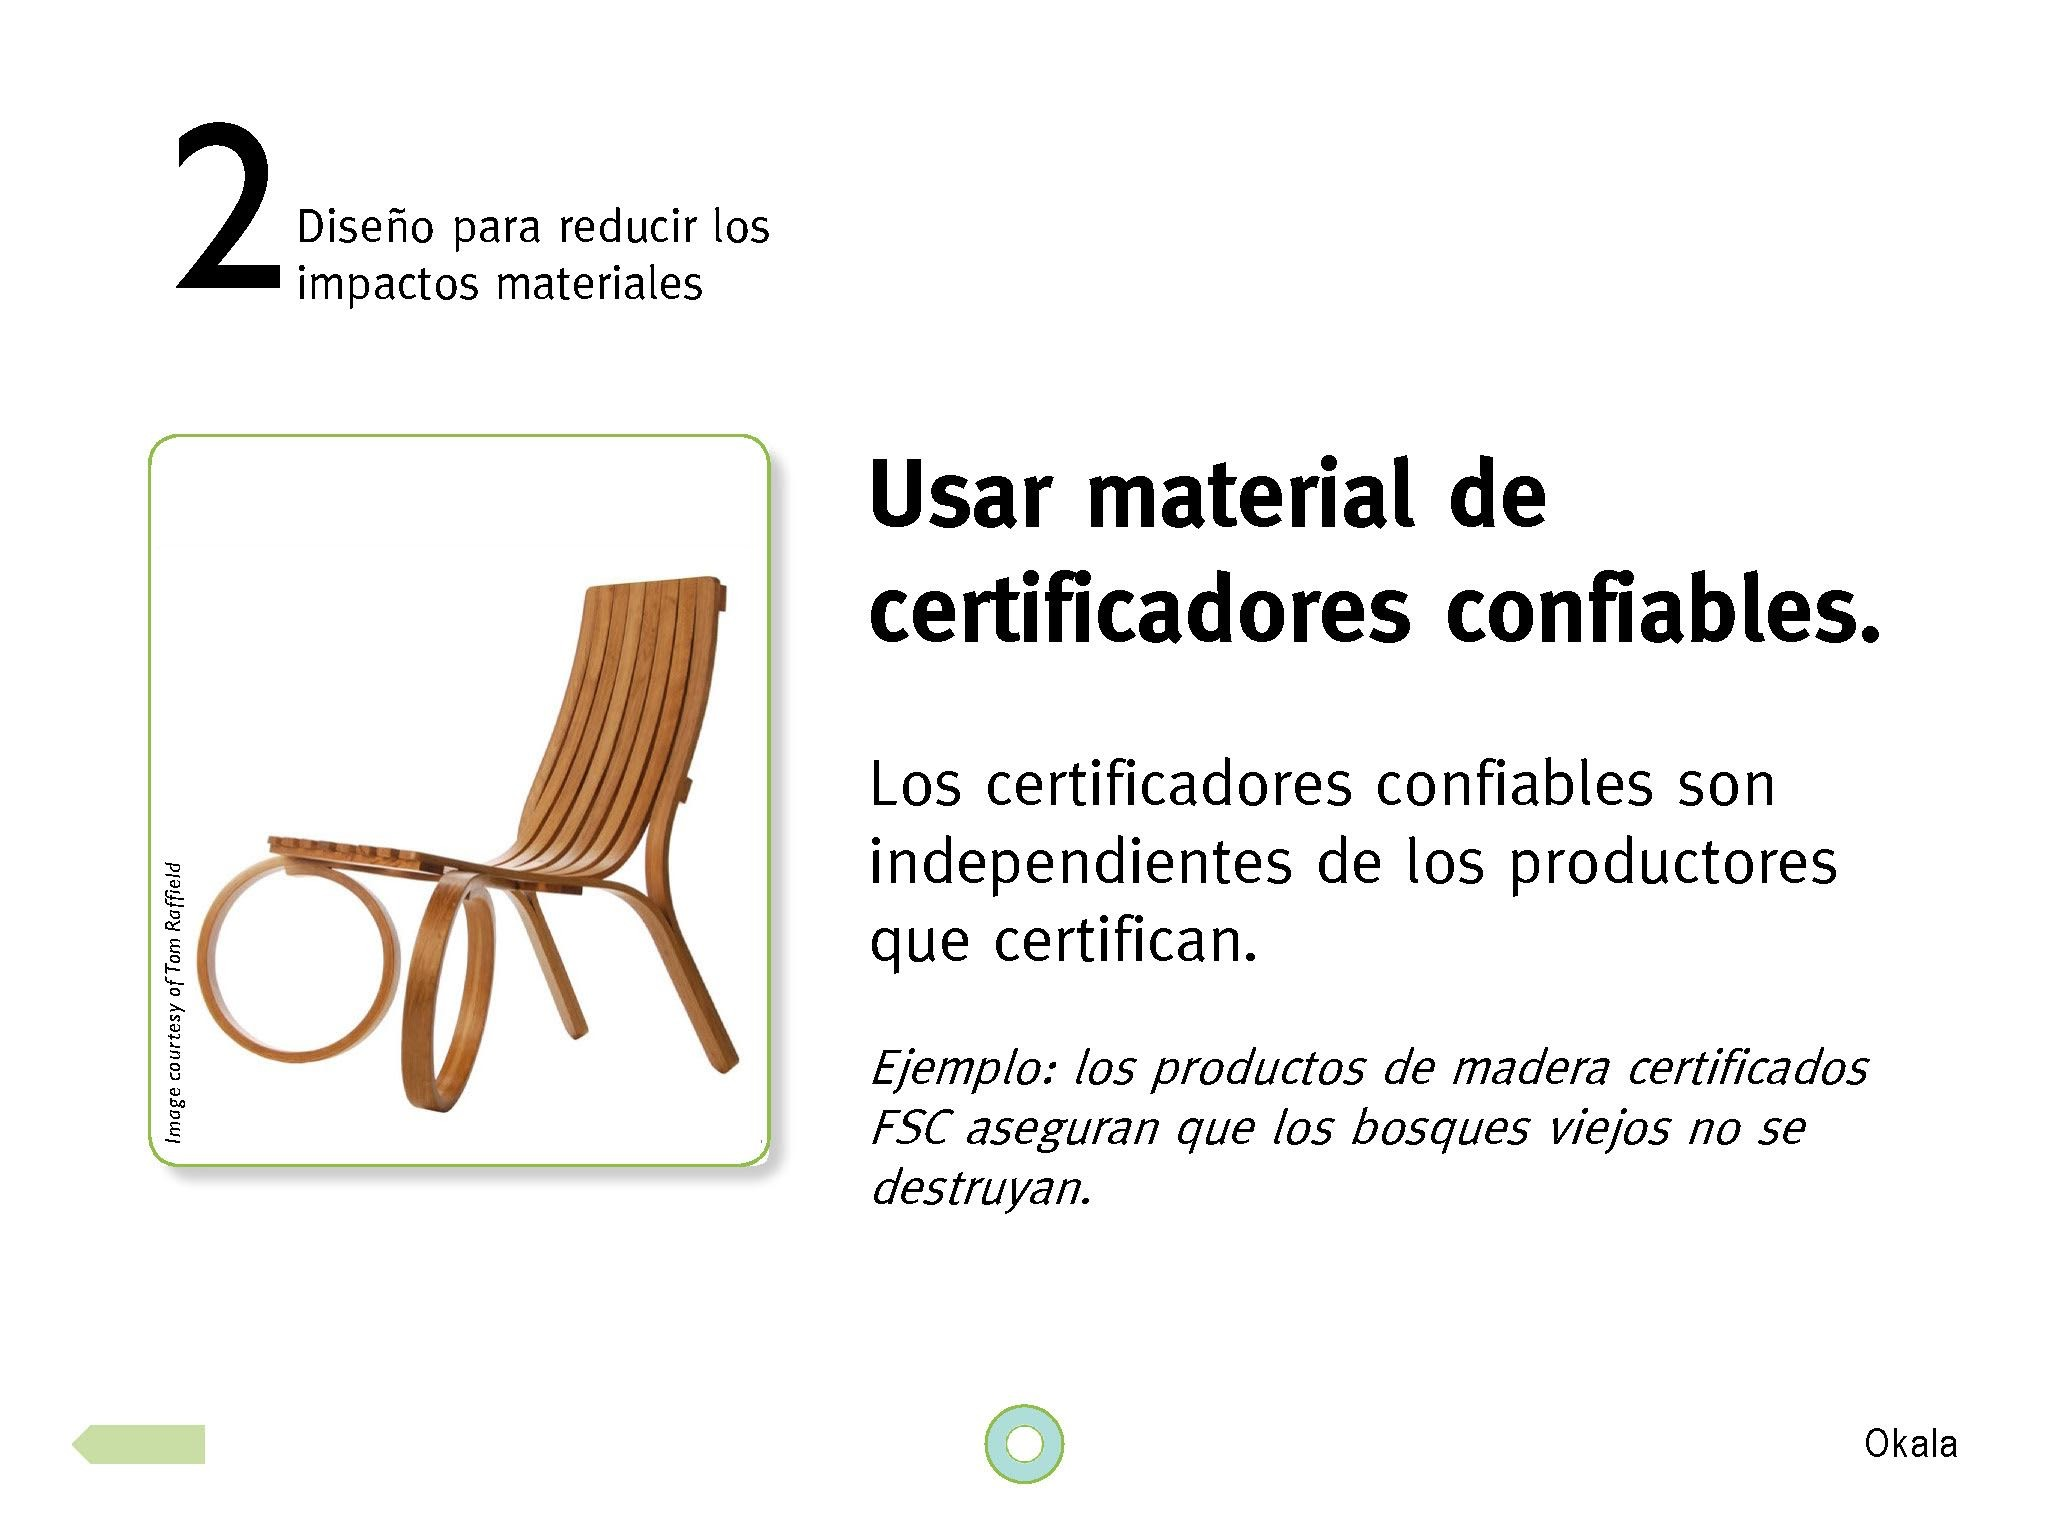 okala-ecodesign-strategy-guide-2012-spanish.new_page_14-1